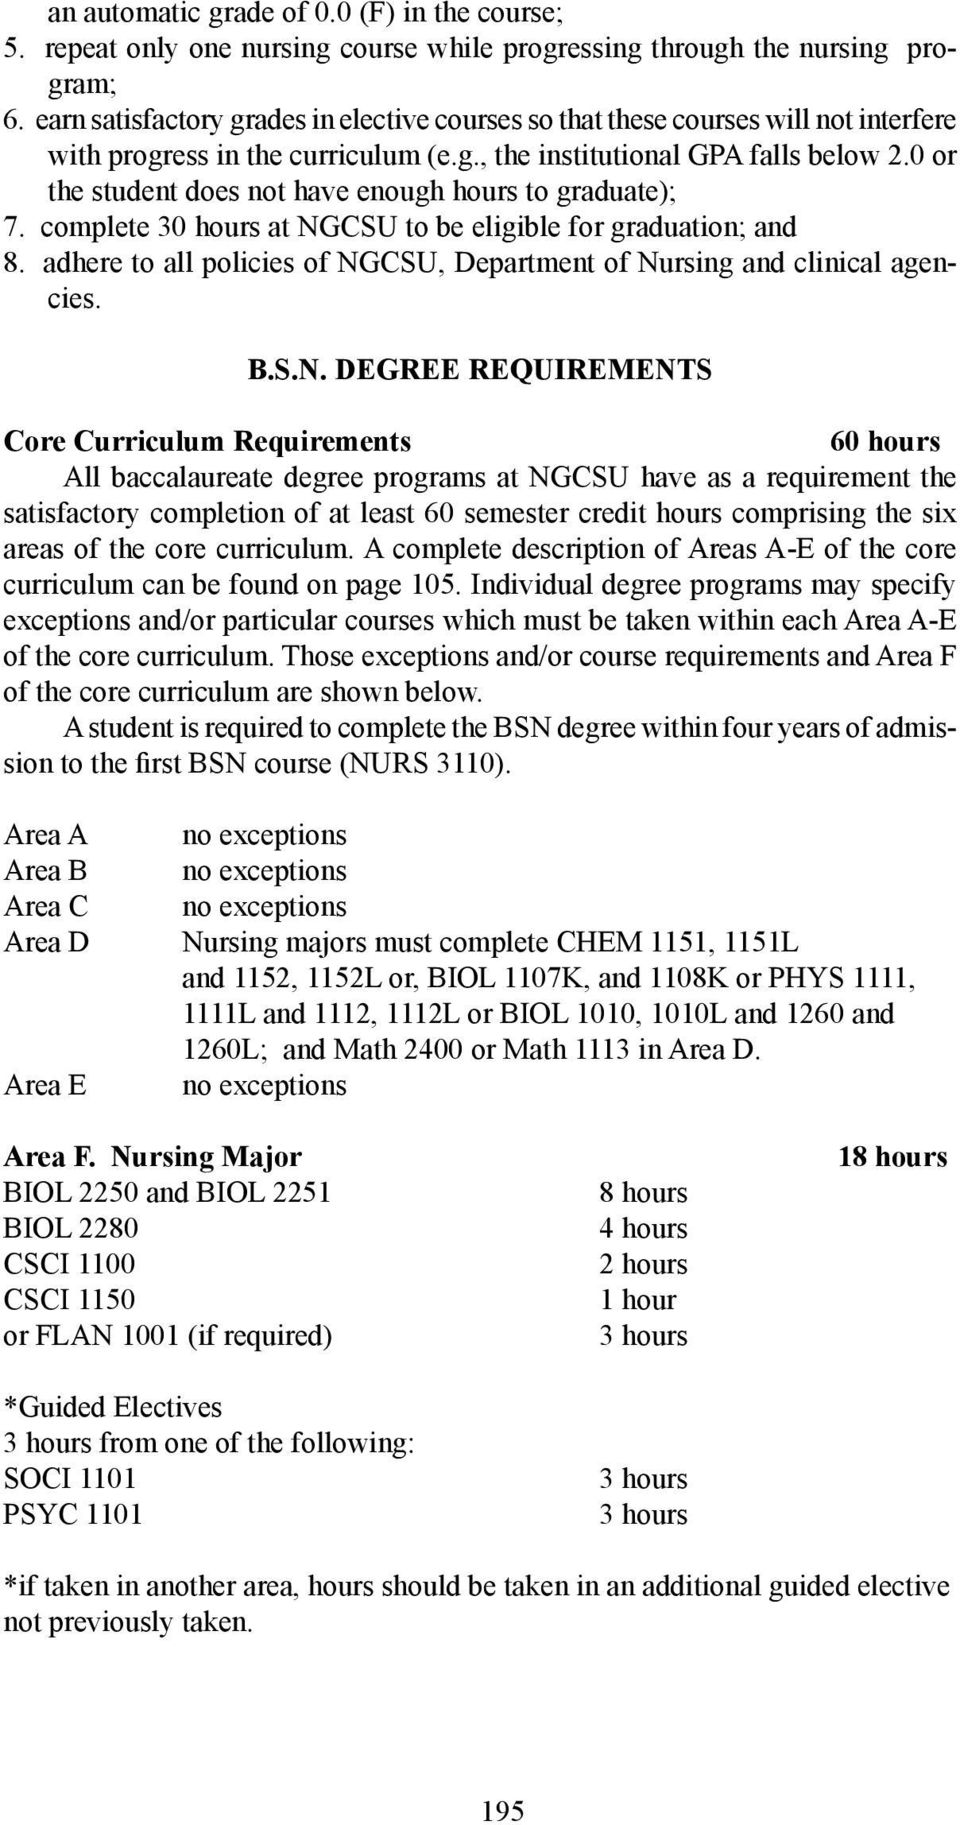 0 or the student does not have enough hours to graduate); 7. complete 30 hours at NGCSU to be eligible for graduation; and 8.